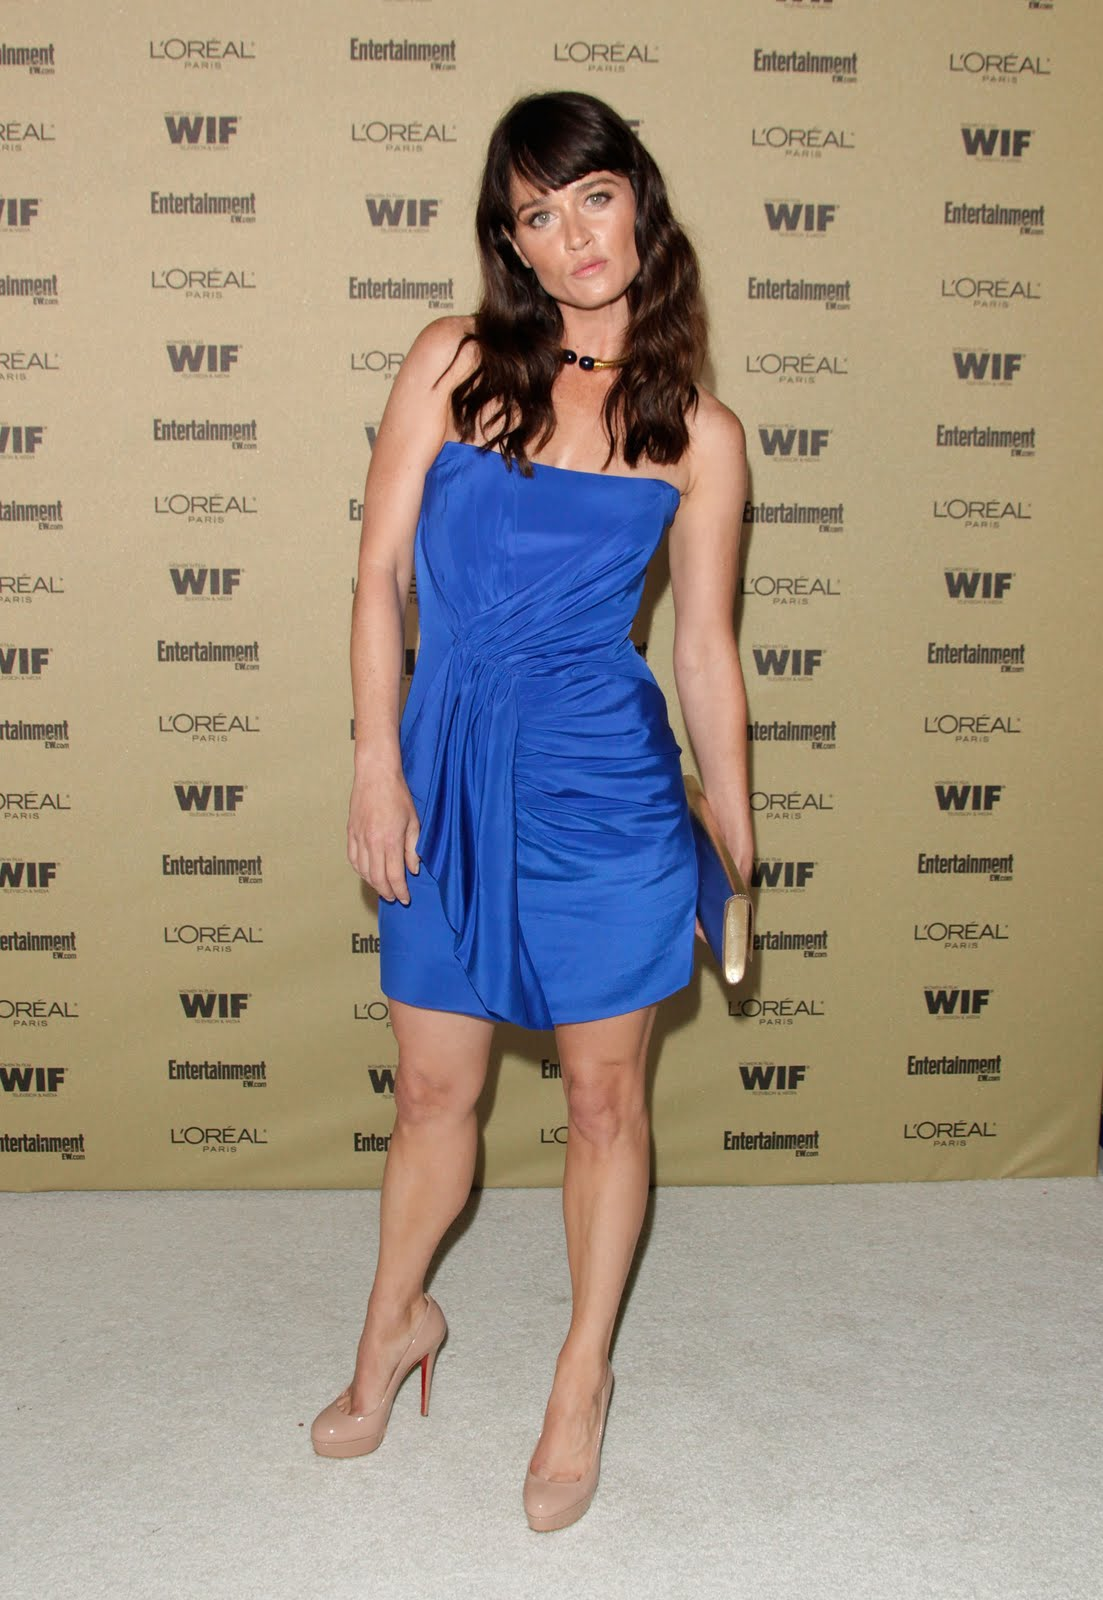 Robin Tunney Nude And Oops Photos - PlayCelebs.net